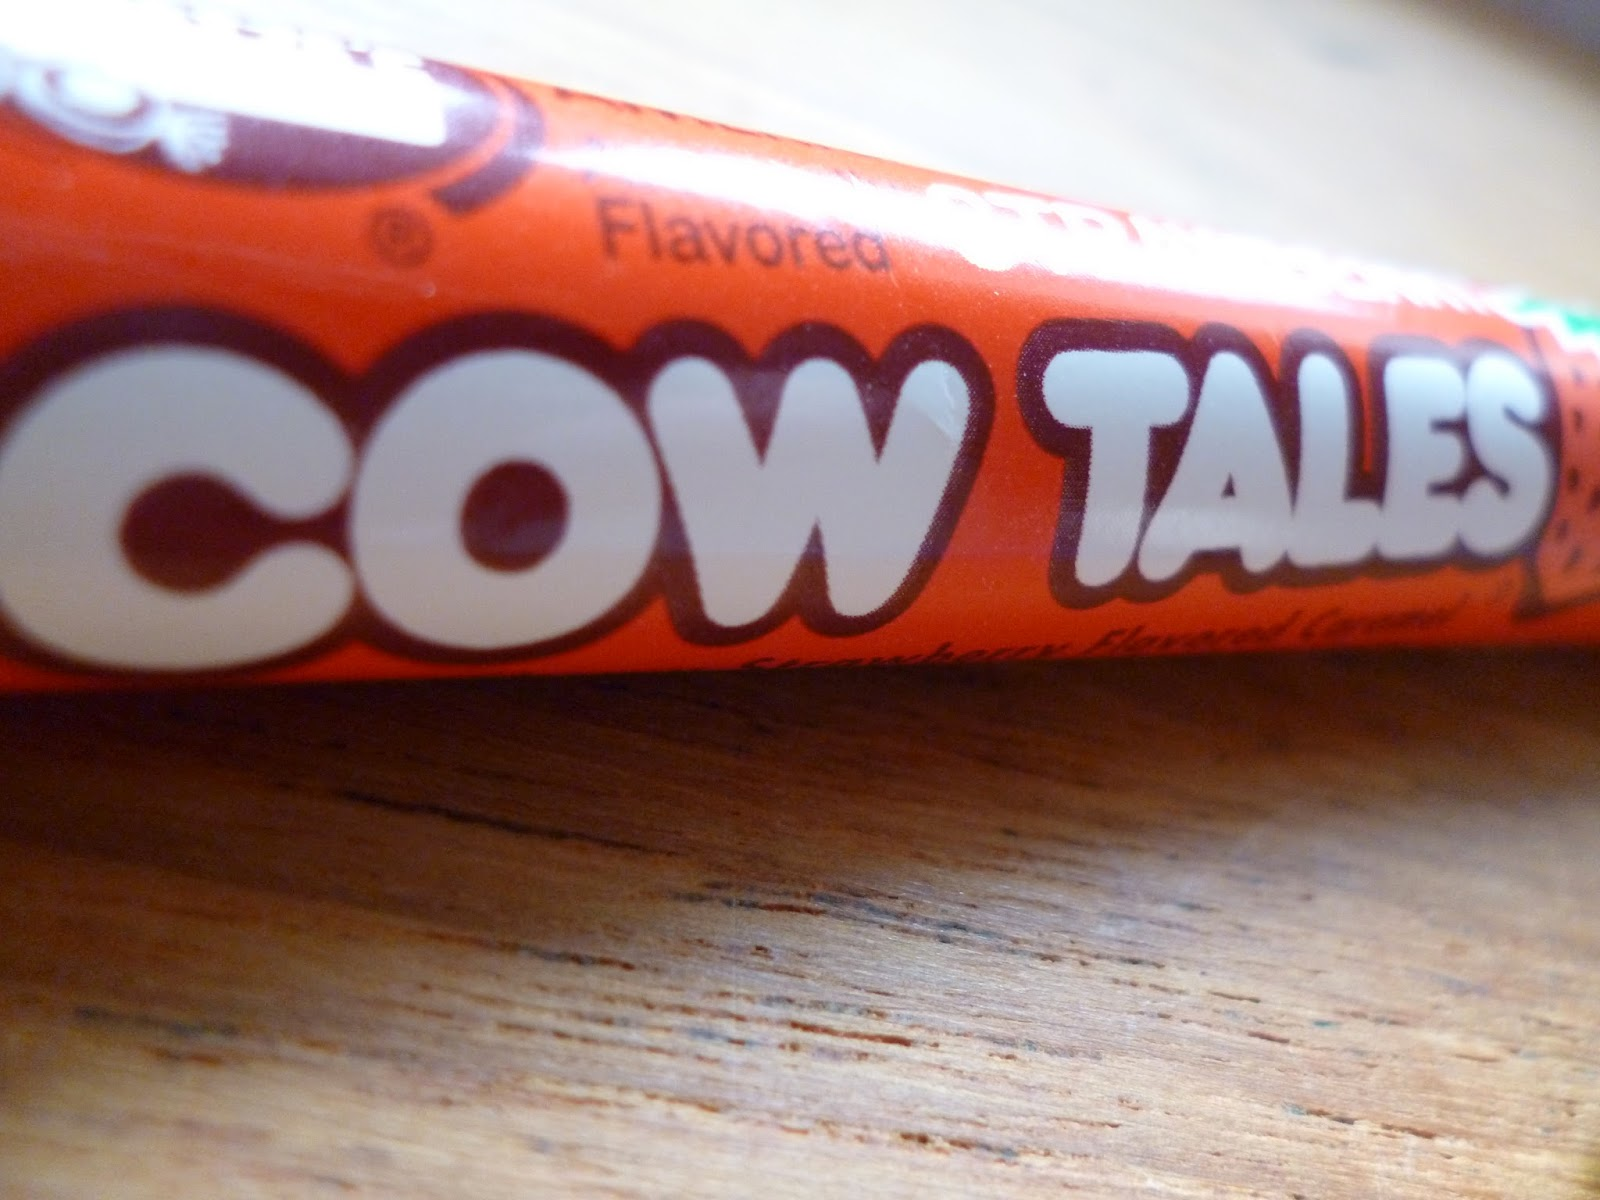 Cow Tales Candy